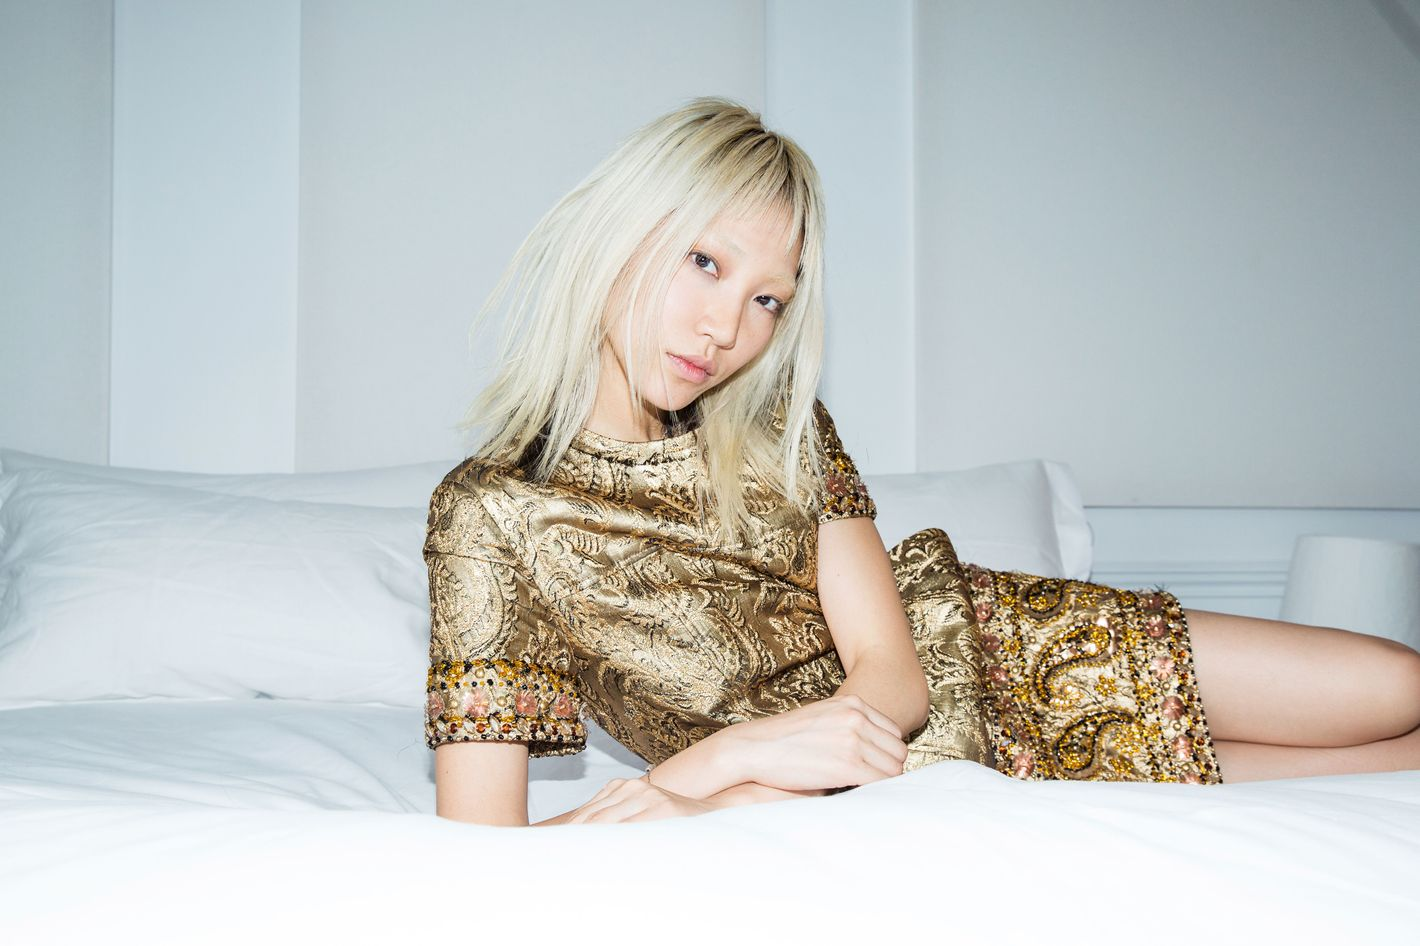 Young Soo Joo Park nudes (71 foto and video), Tits, Sideboobs, Selfie, butt 2018